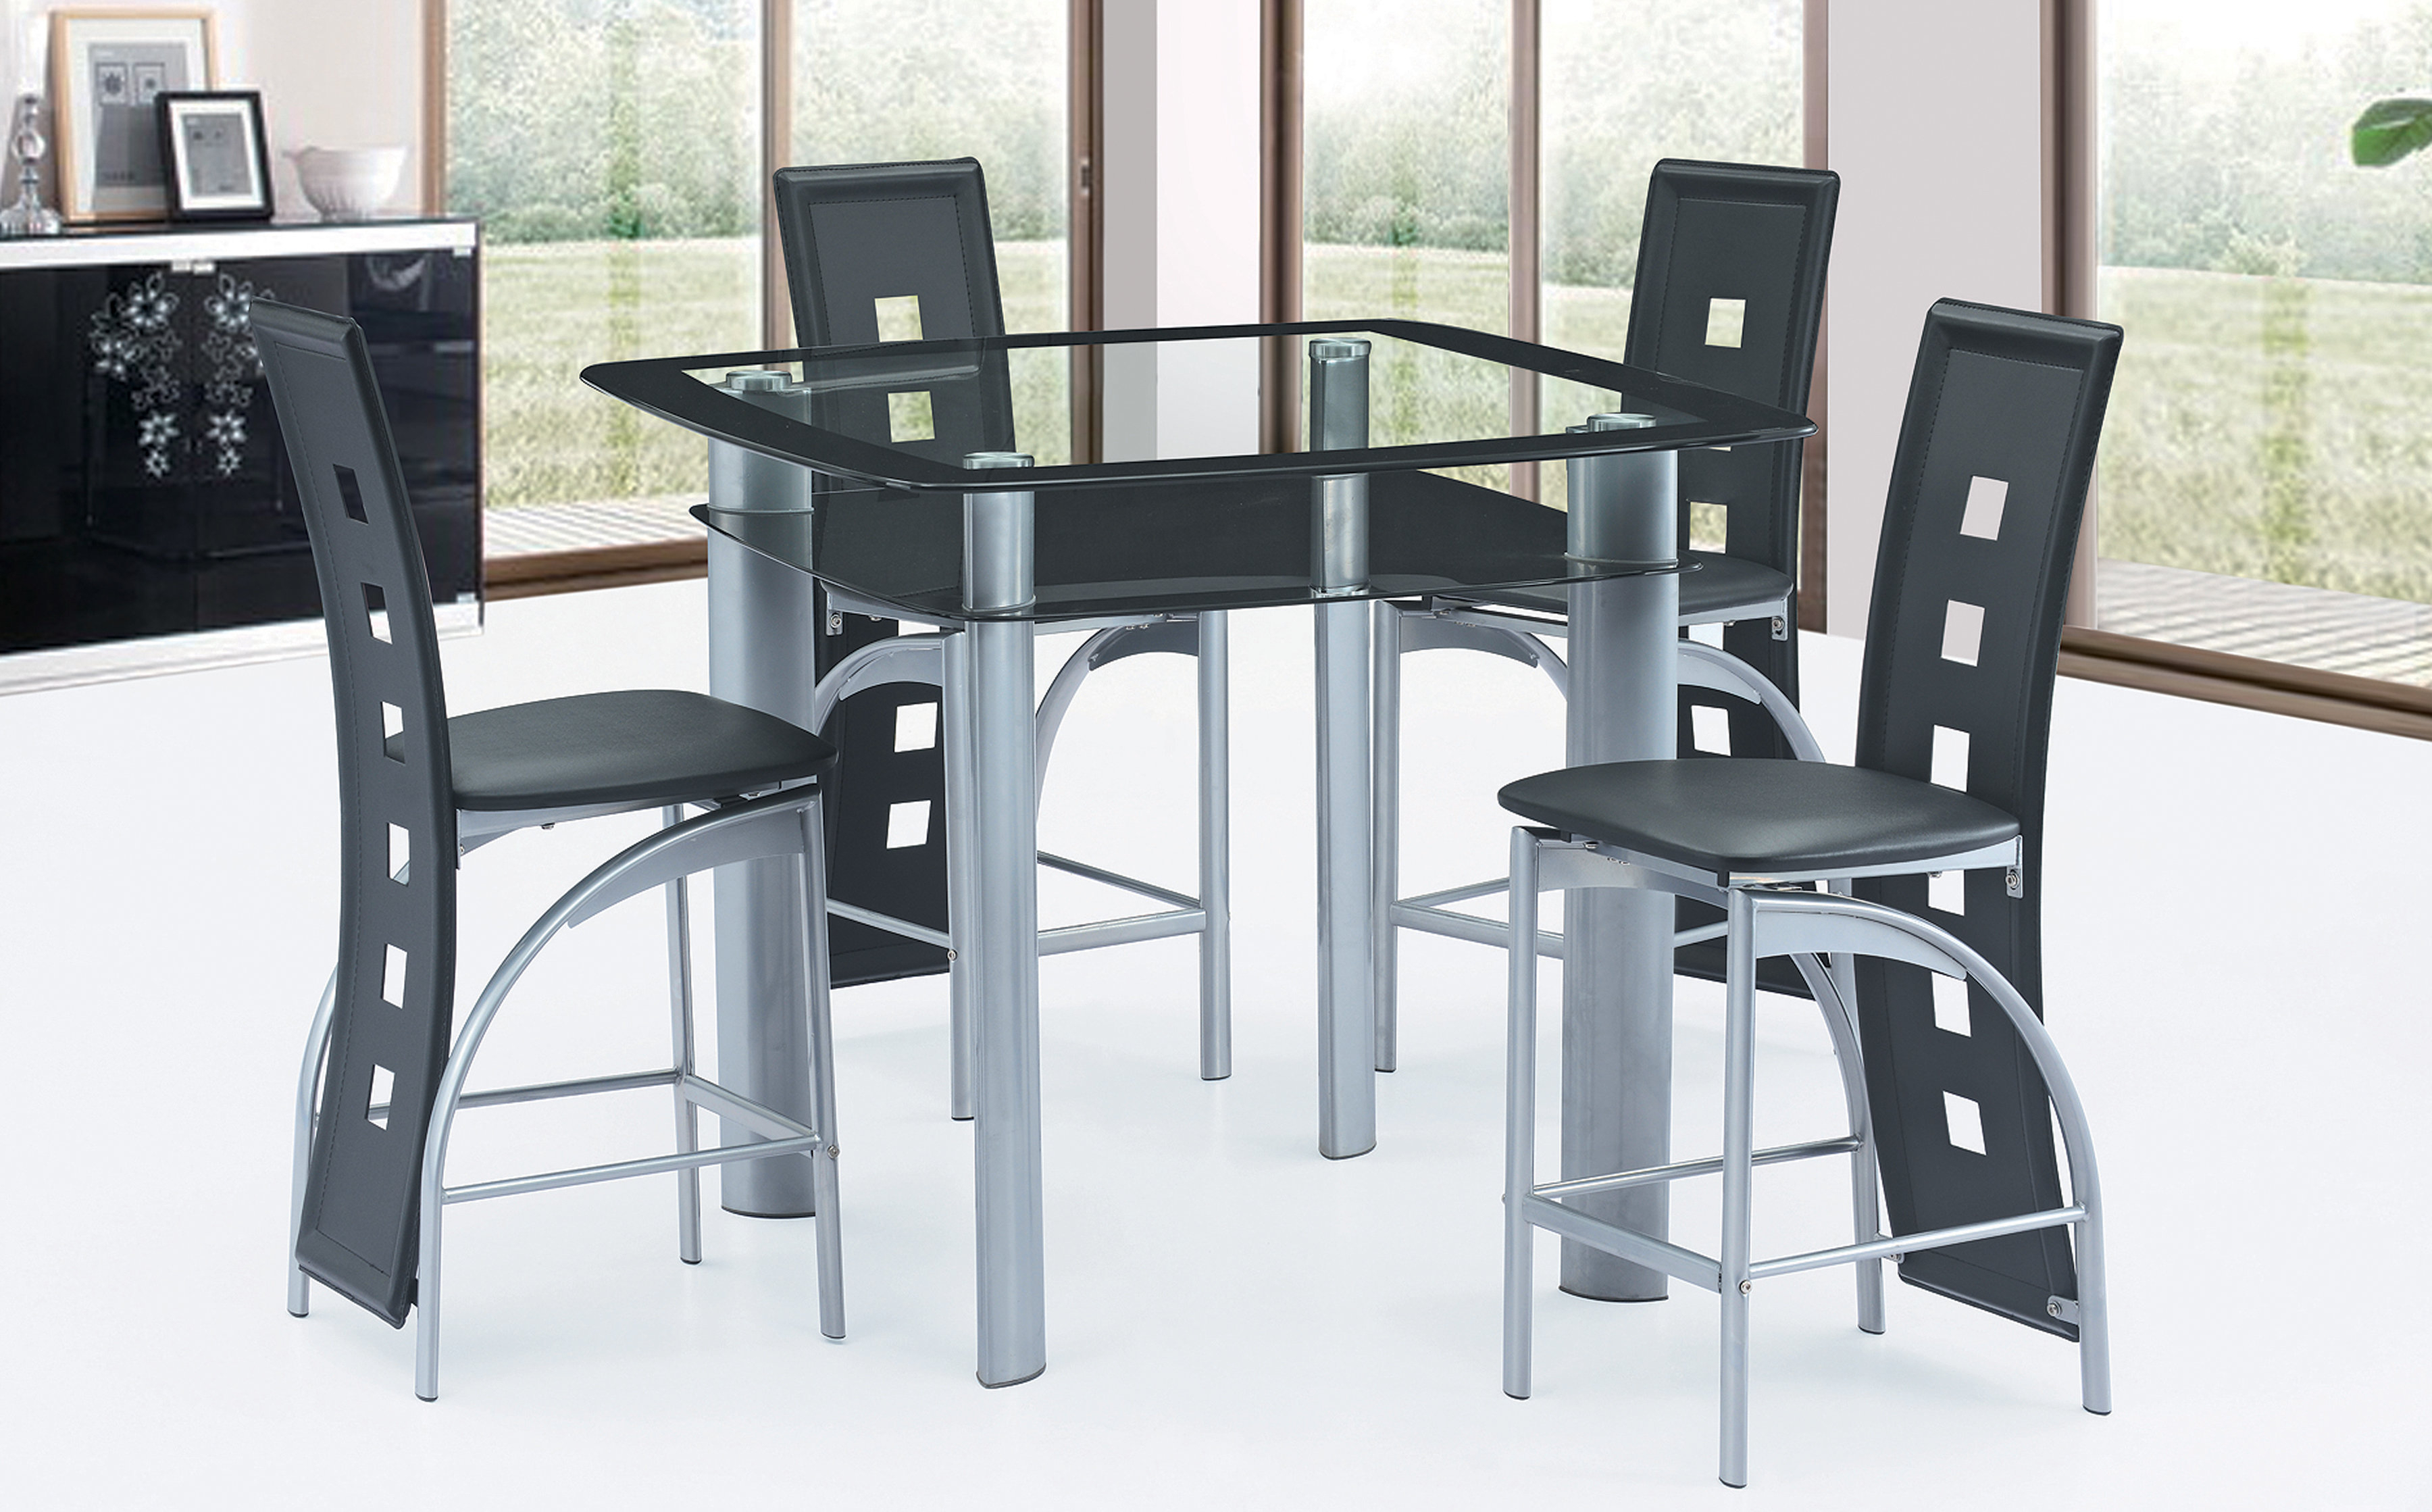 Glenloft 5 Piece Counter Height Dining Set Intended For Latest Honoria 3 Piece Dining Sets (View 18 of 20)